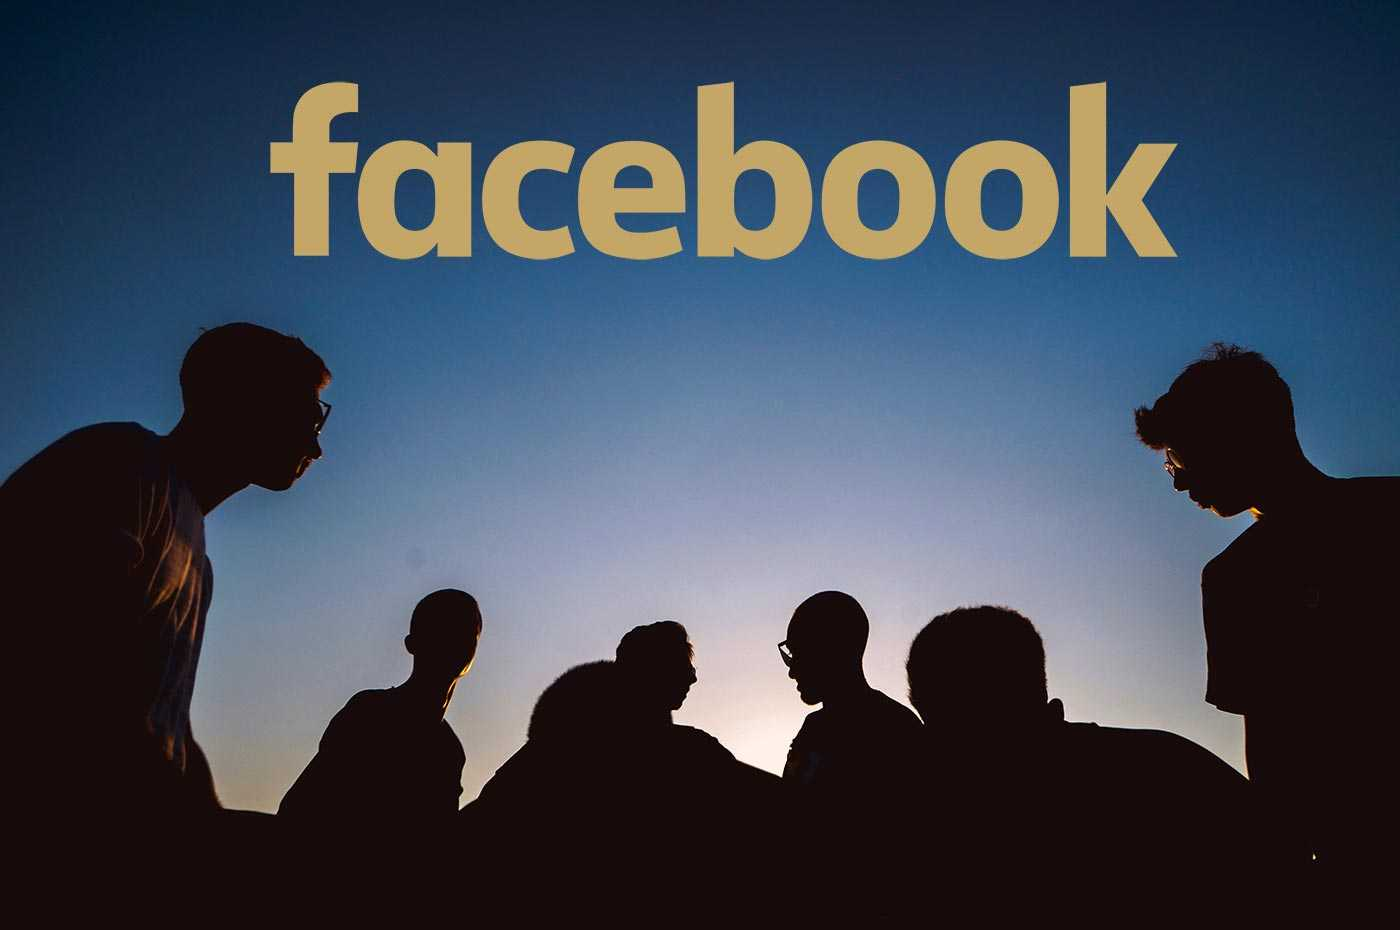 Your Top 6 friends on Facebook – Everything You Need to Know